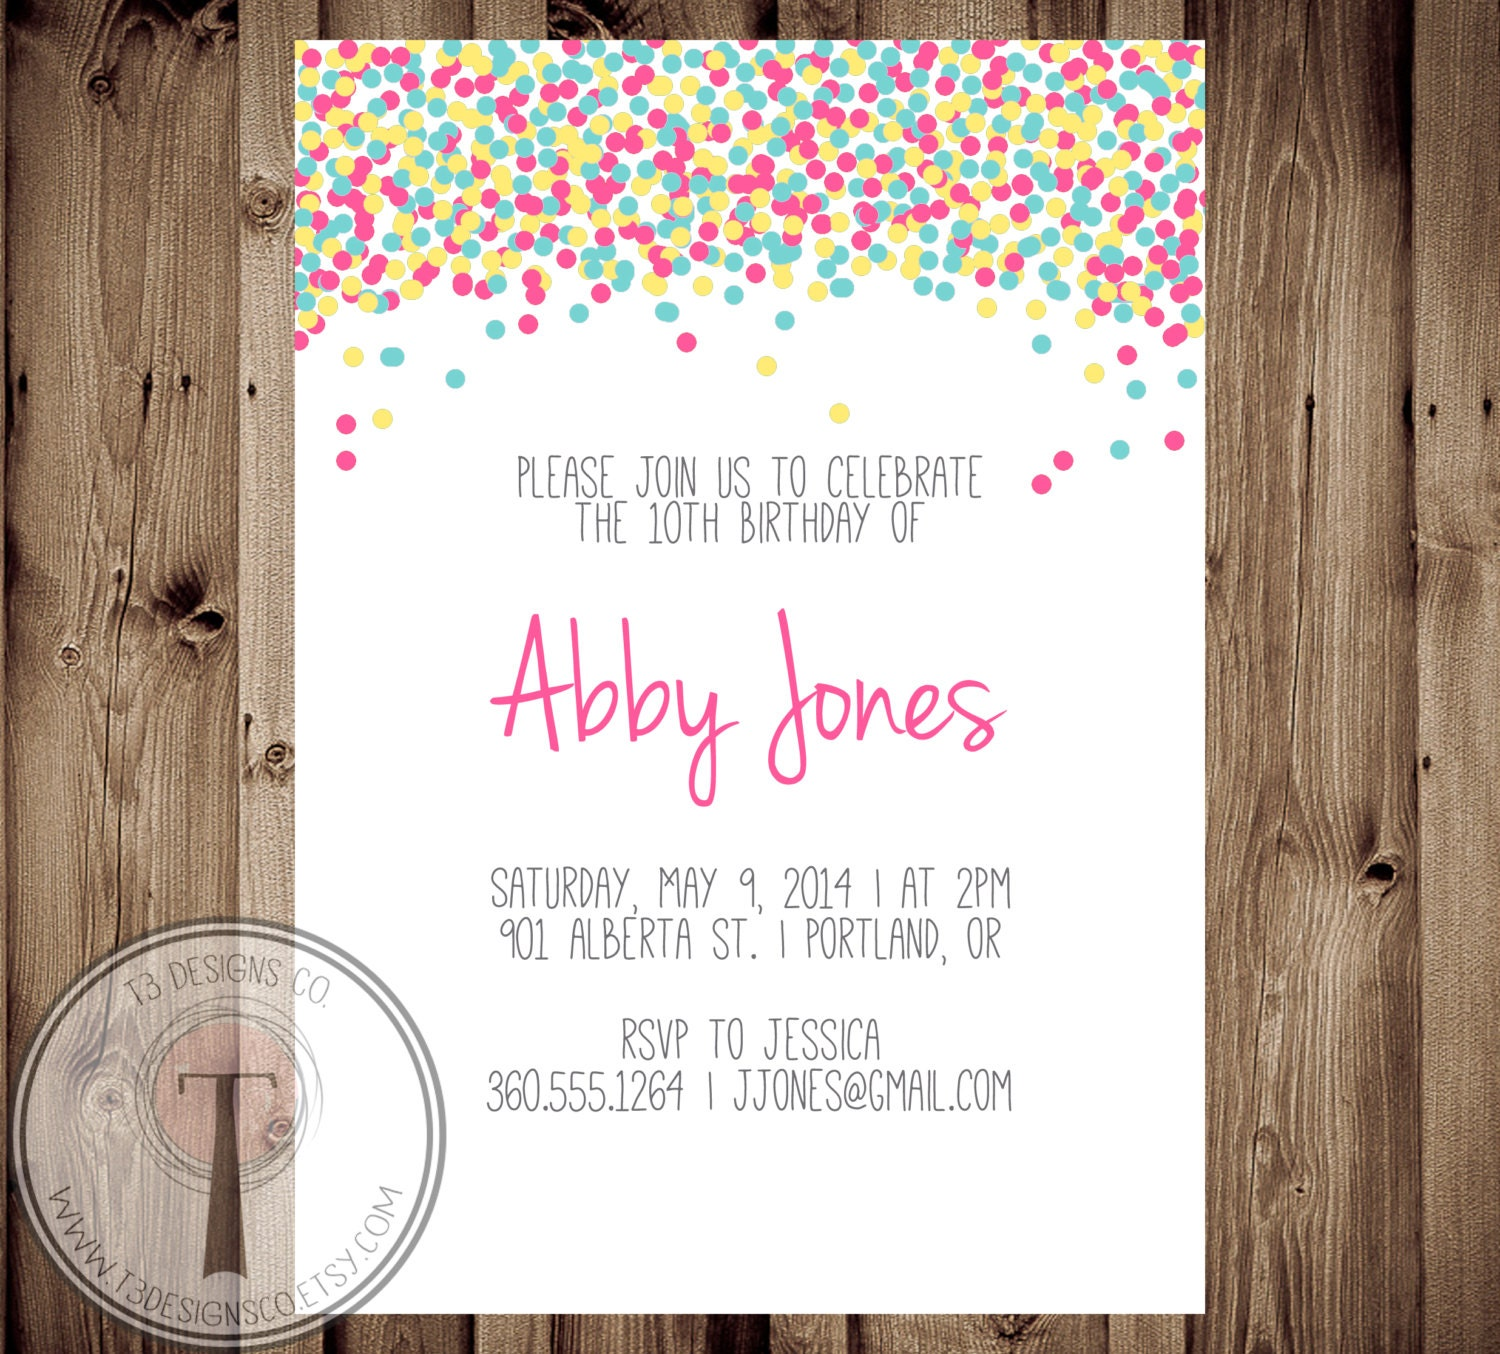 Confetti birthday invitation bright birthday invite girls birthday confetti birthday invitation bright birthday invite girls birthday tween birthday 30th birthday 40th 21st birthday party invitation filmwisefo